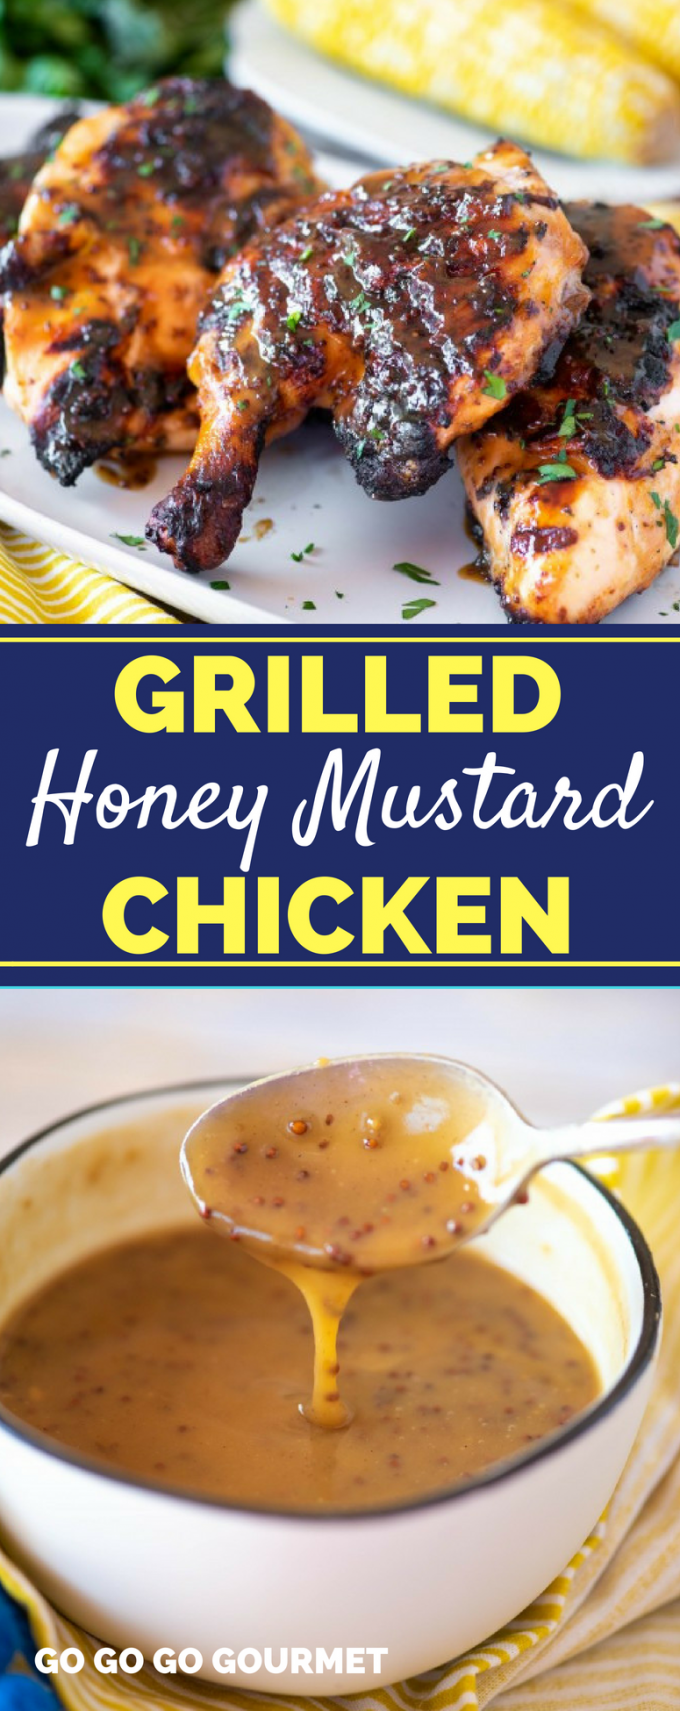 Grilling recipes don't get better than this Honey Mustard Grilled Chicken! Using thighs, breasts or wings in a delicious marinade, this will become one of your favorite healthy meals! #honeymustardchickendinner #honeymustardgrilledchicken #easygrillingrecipes #gogogogourmet